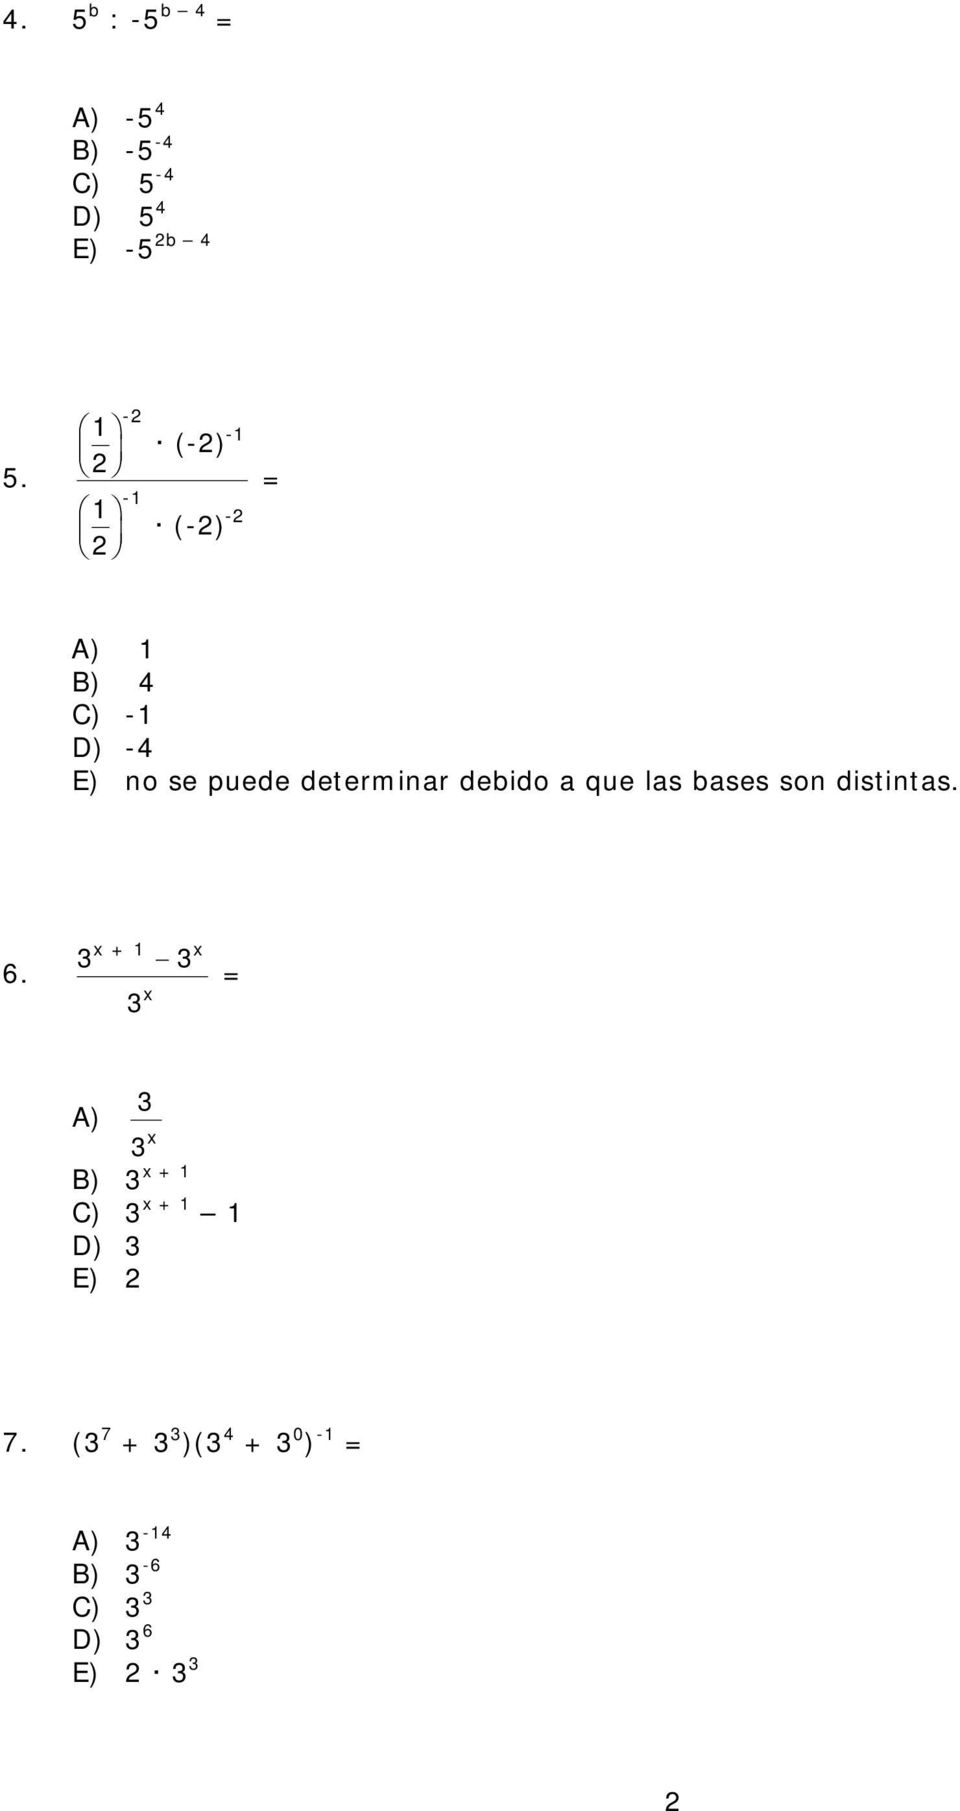 determinr debido que ls bses son distints. 6.